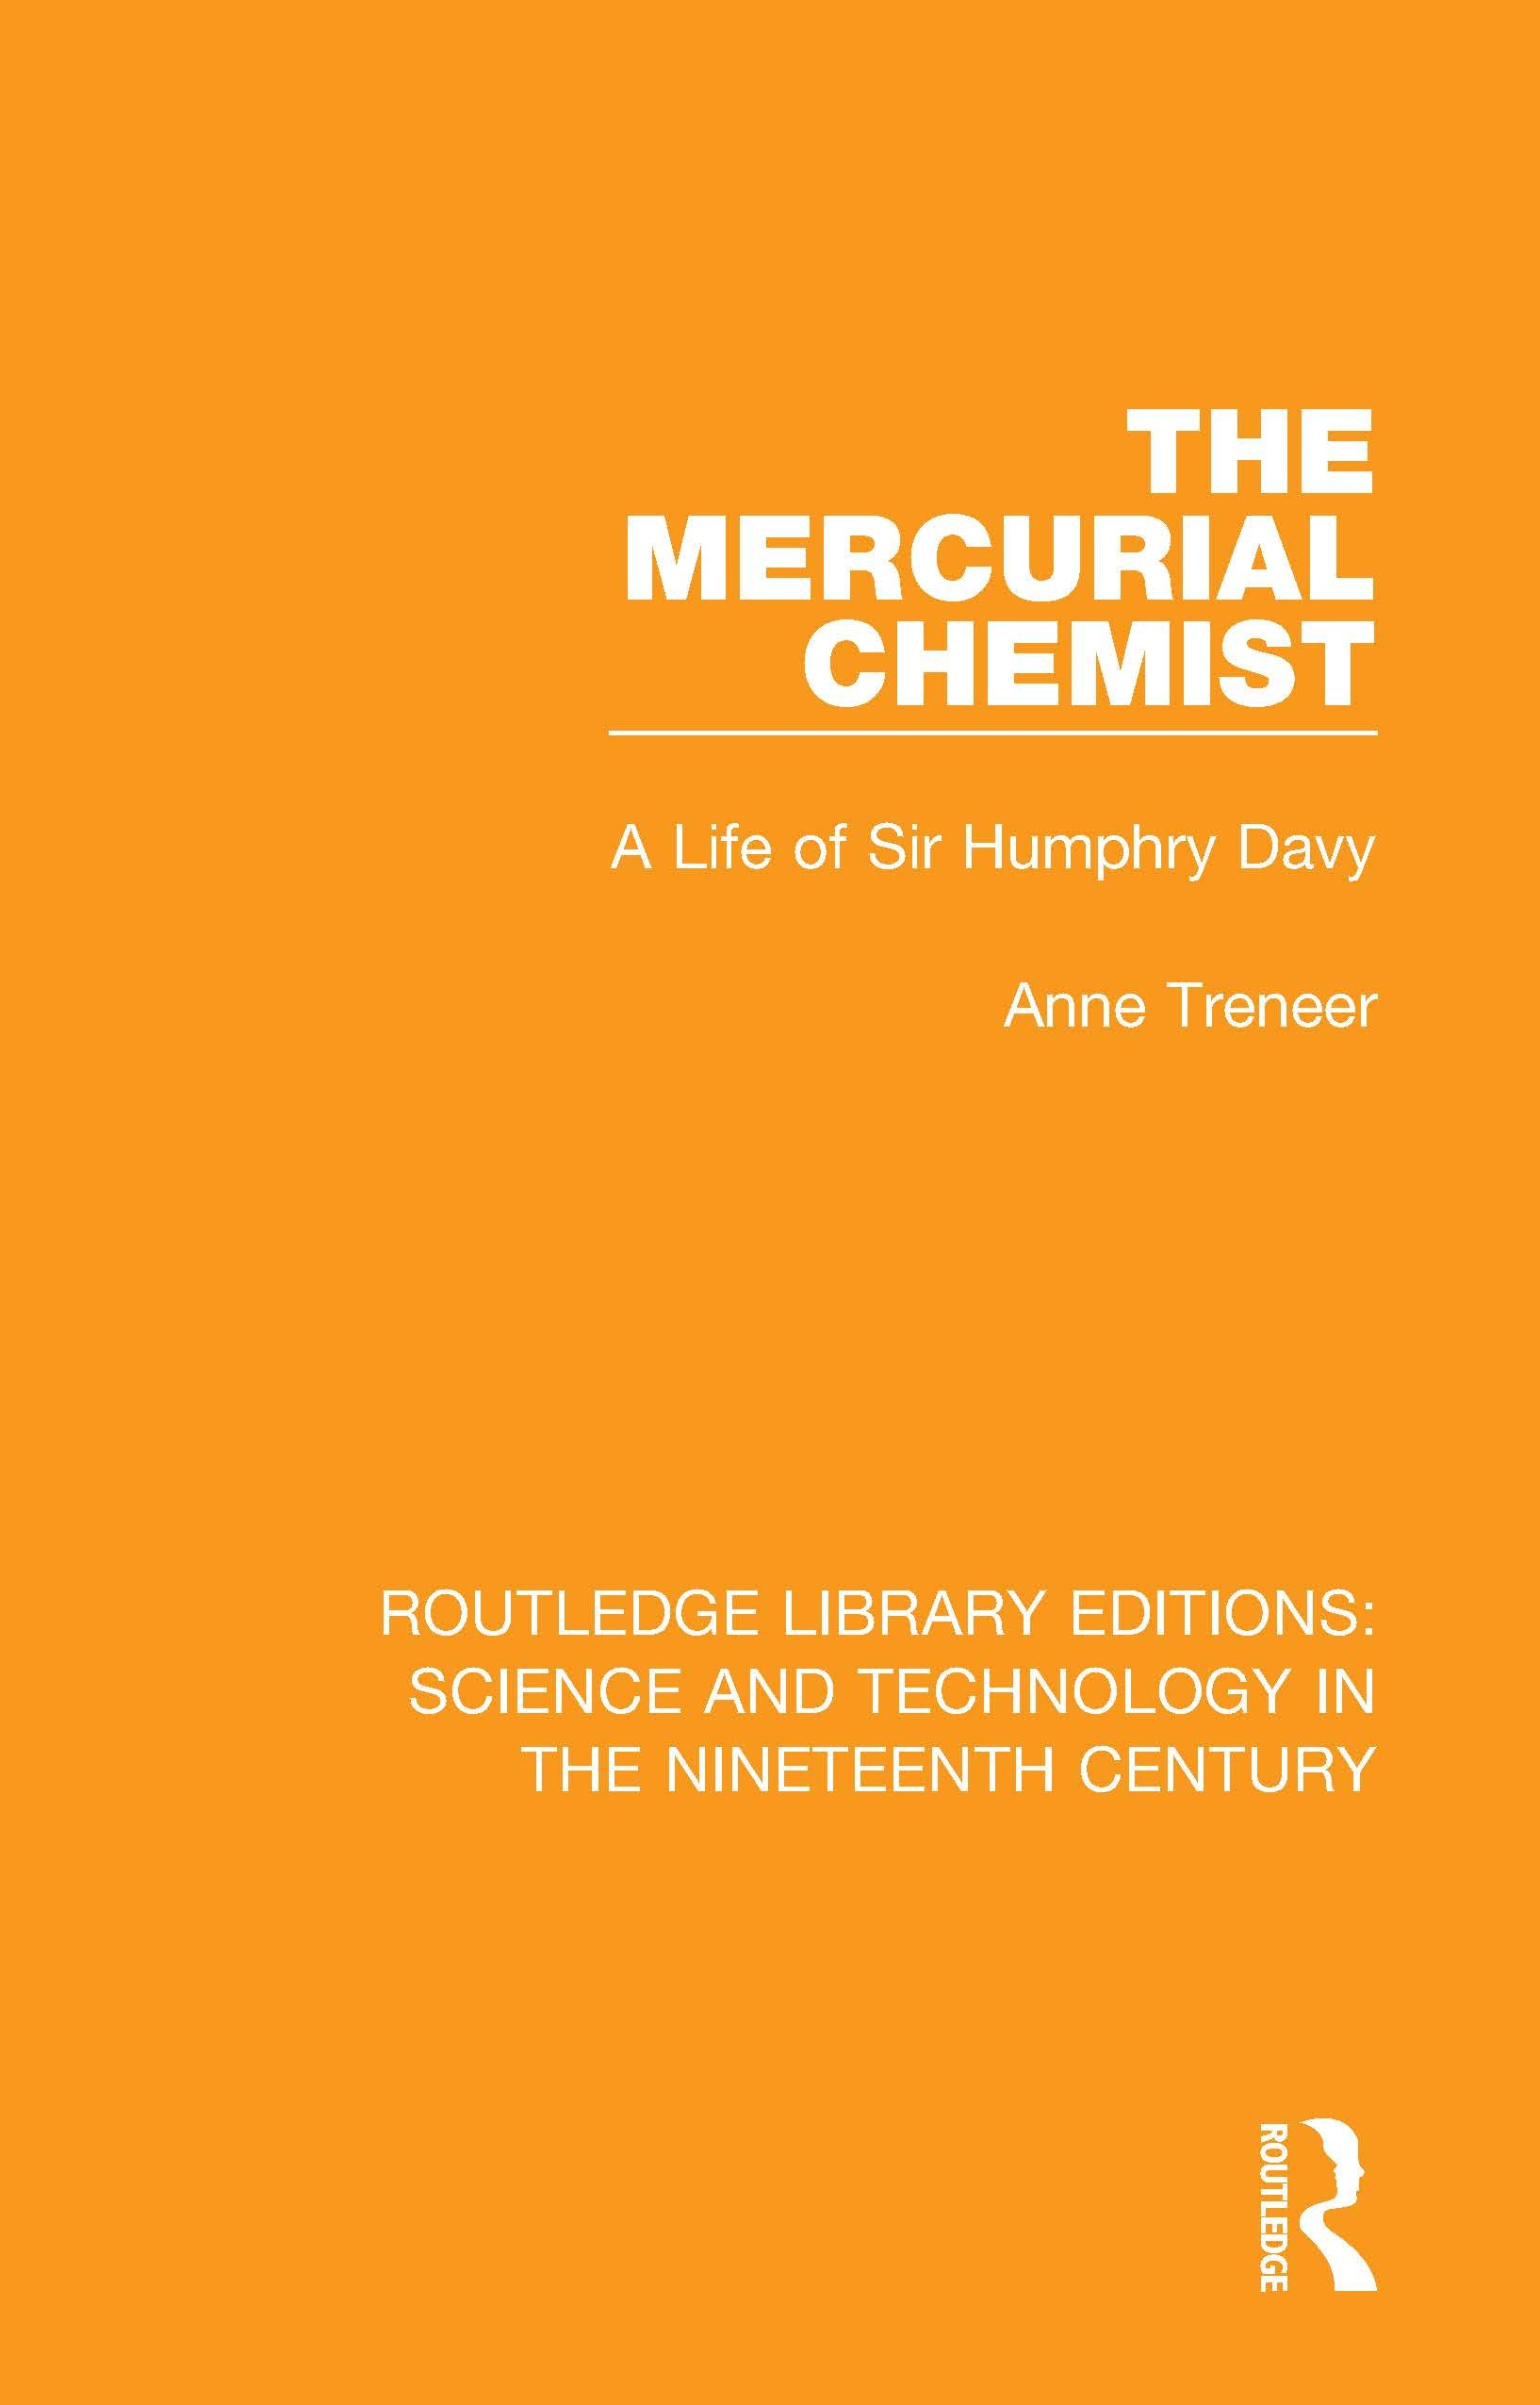 The Mercurial Chemist